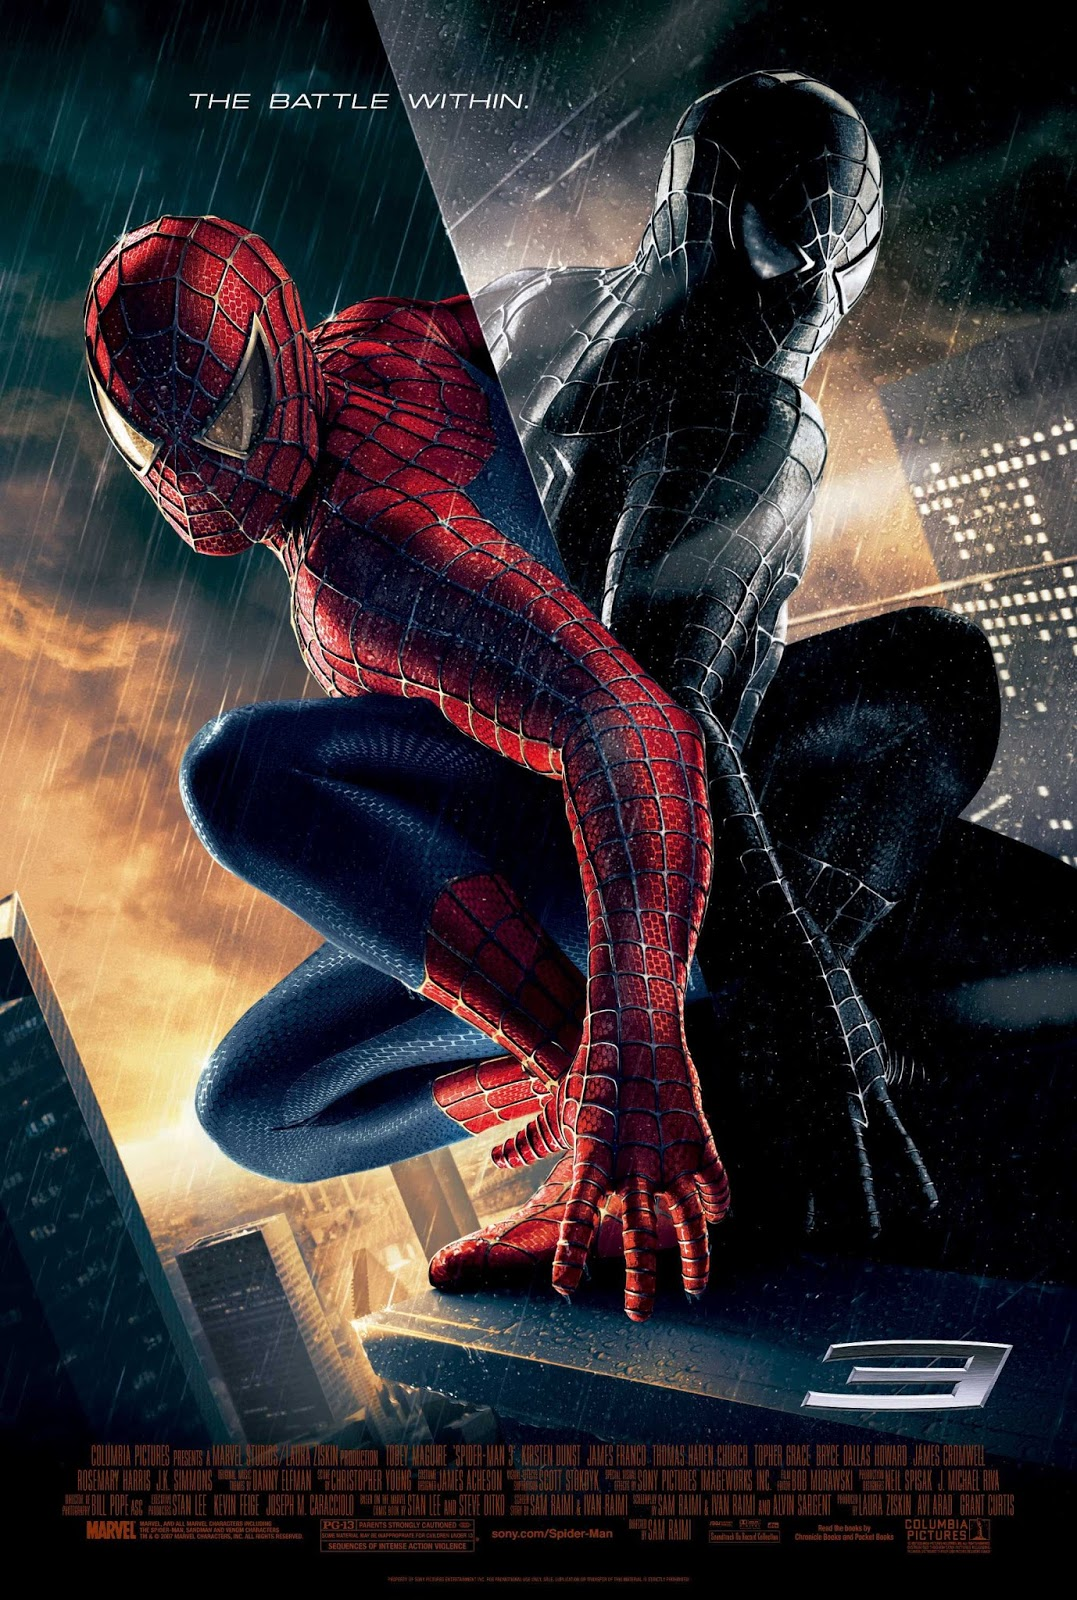 SpiderMan 3 (2007) 480p Hindi BRRip Dual Audio Full Movie 300MB